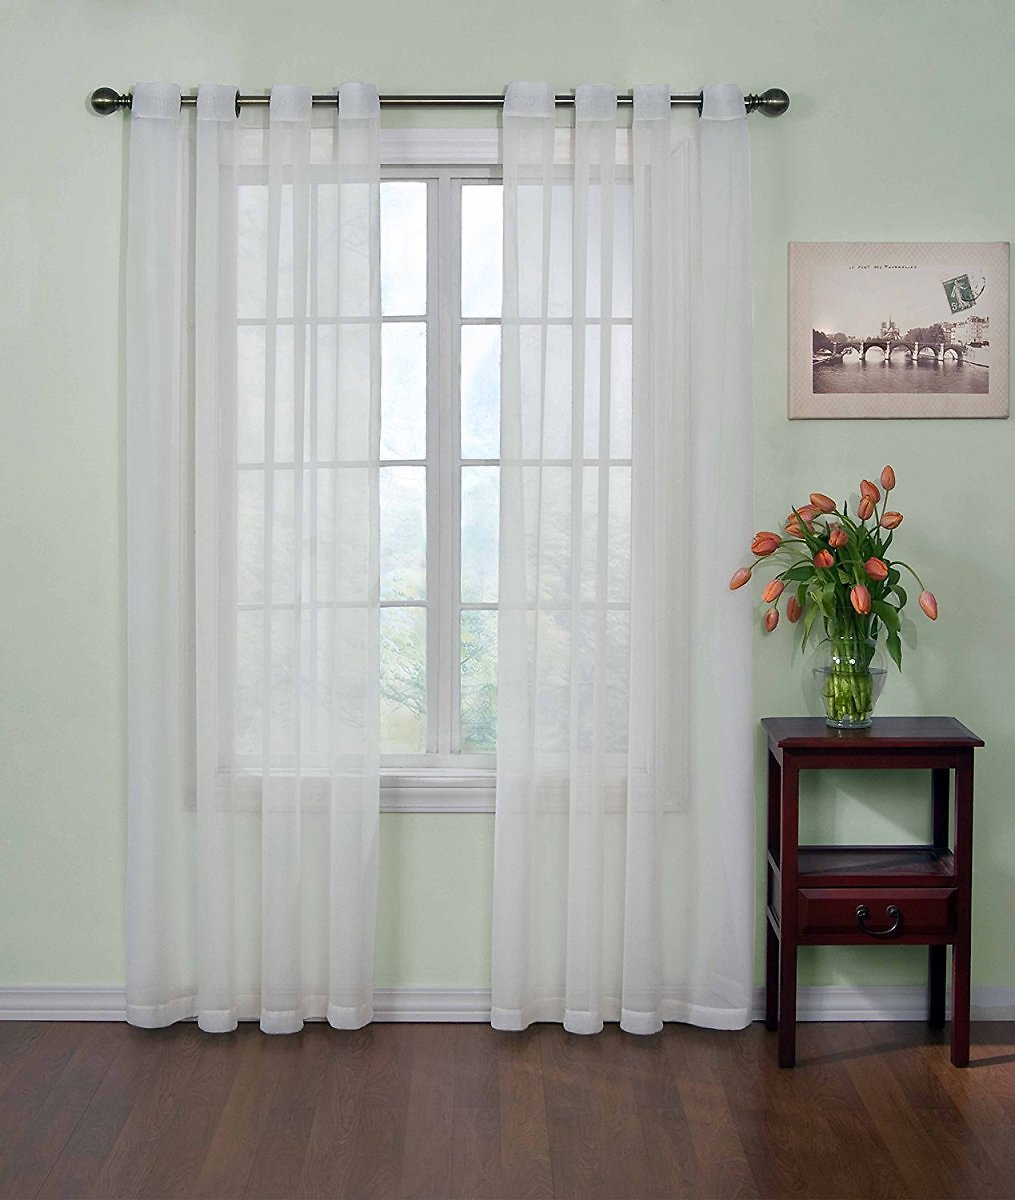 59x108 Arm and Hammer Odor Neutralizing Sheer Curtain